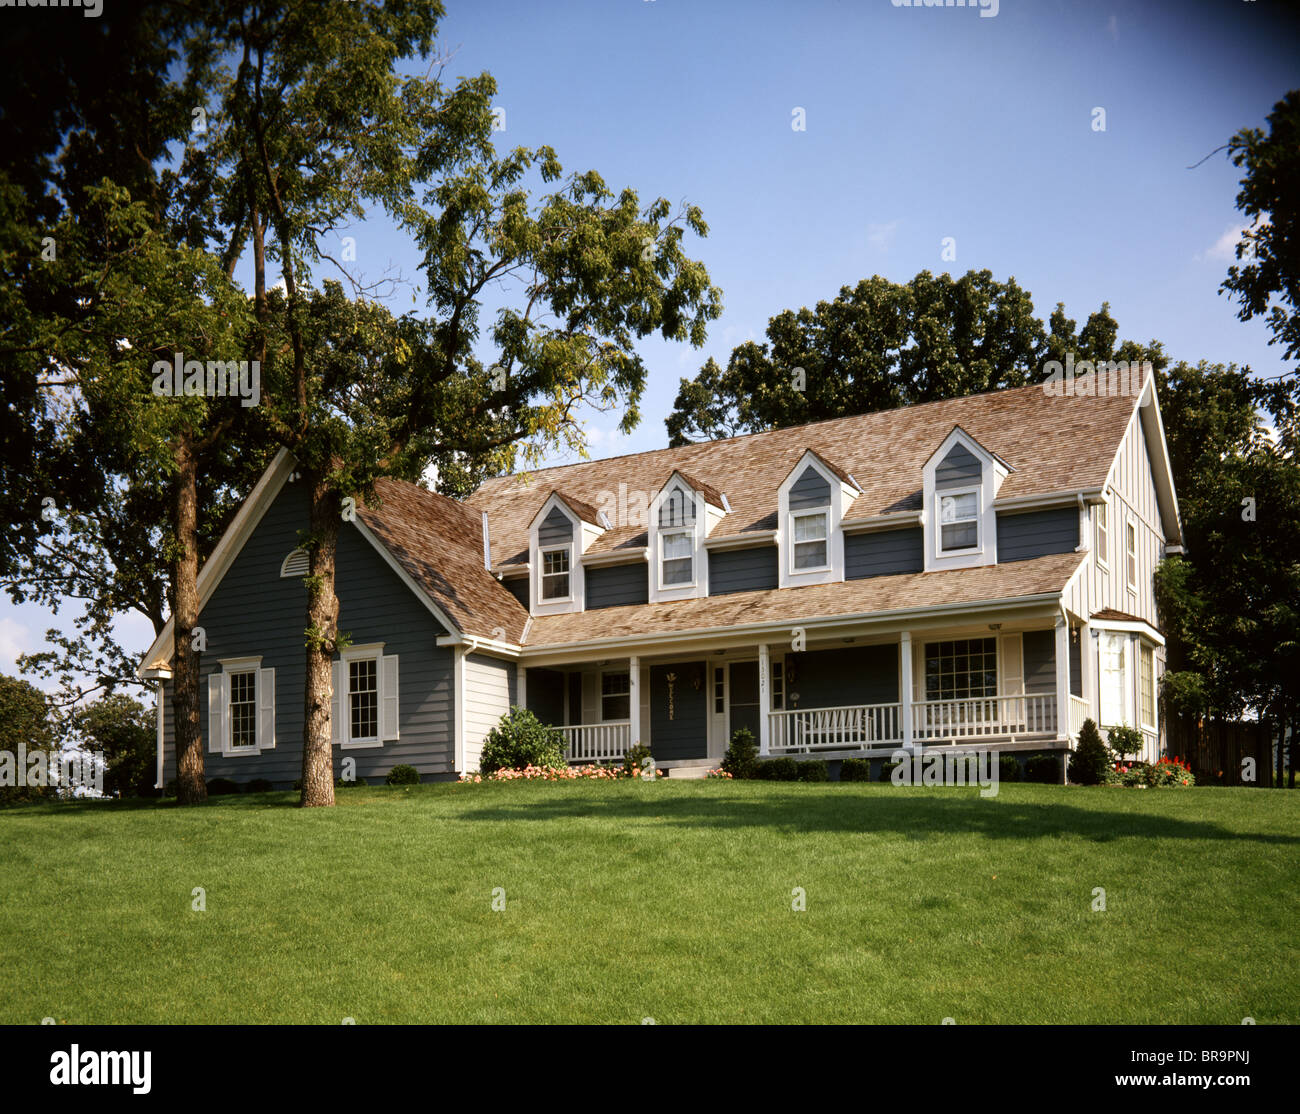 GRAY TWO STORY HOUSE WITH FRONT PORCH FOUR DORMER STYLE WINDOWS